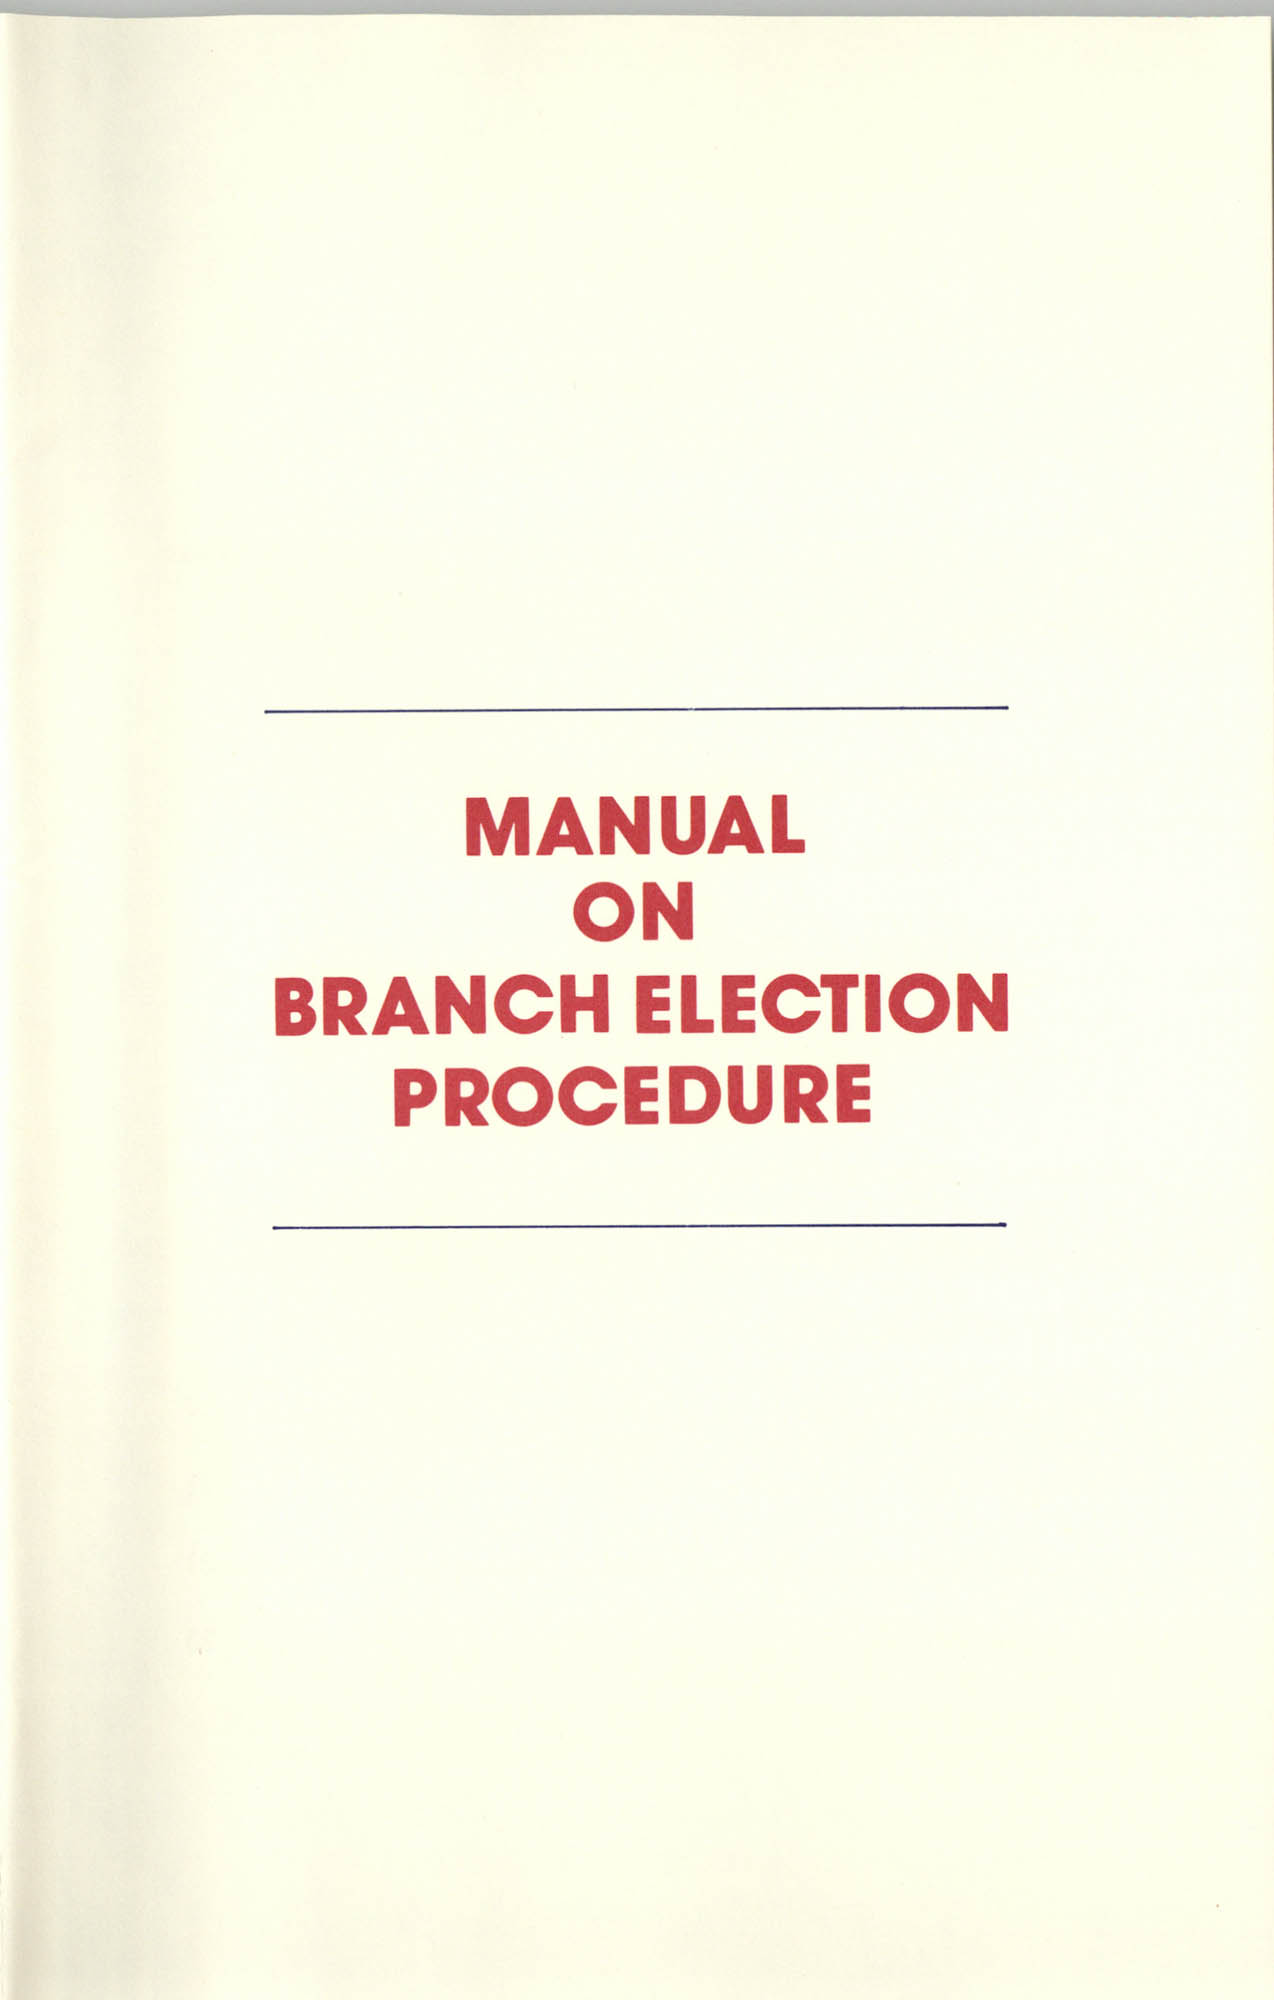 Manual on Branch Election Procedure, Title Page